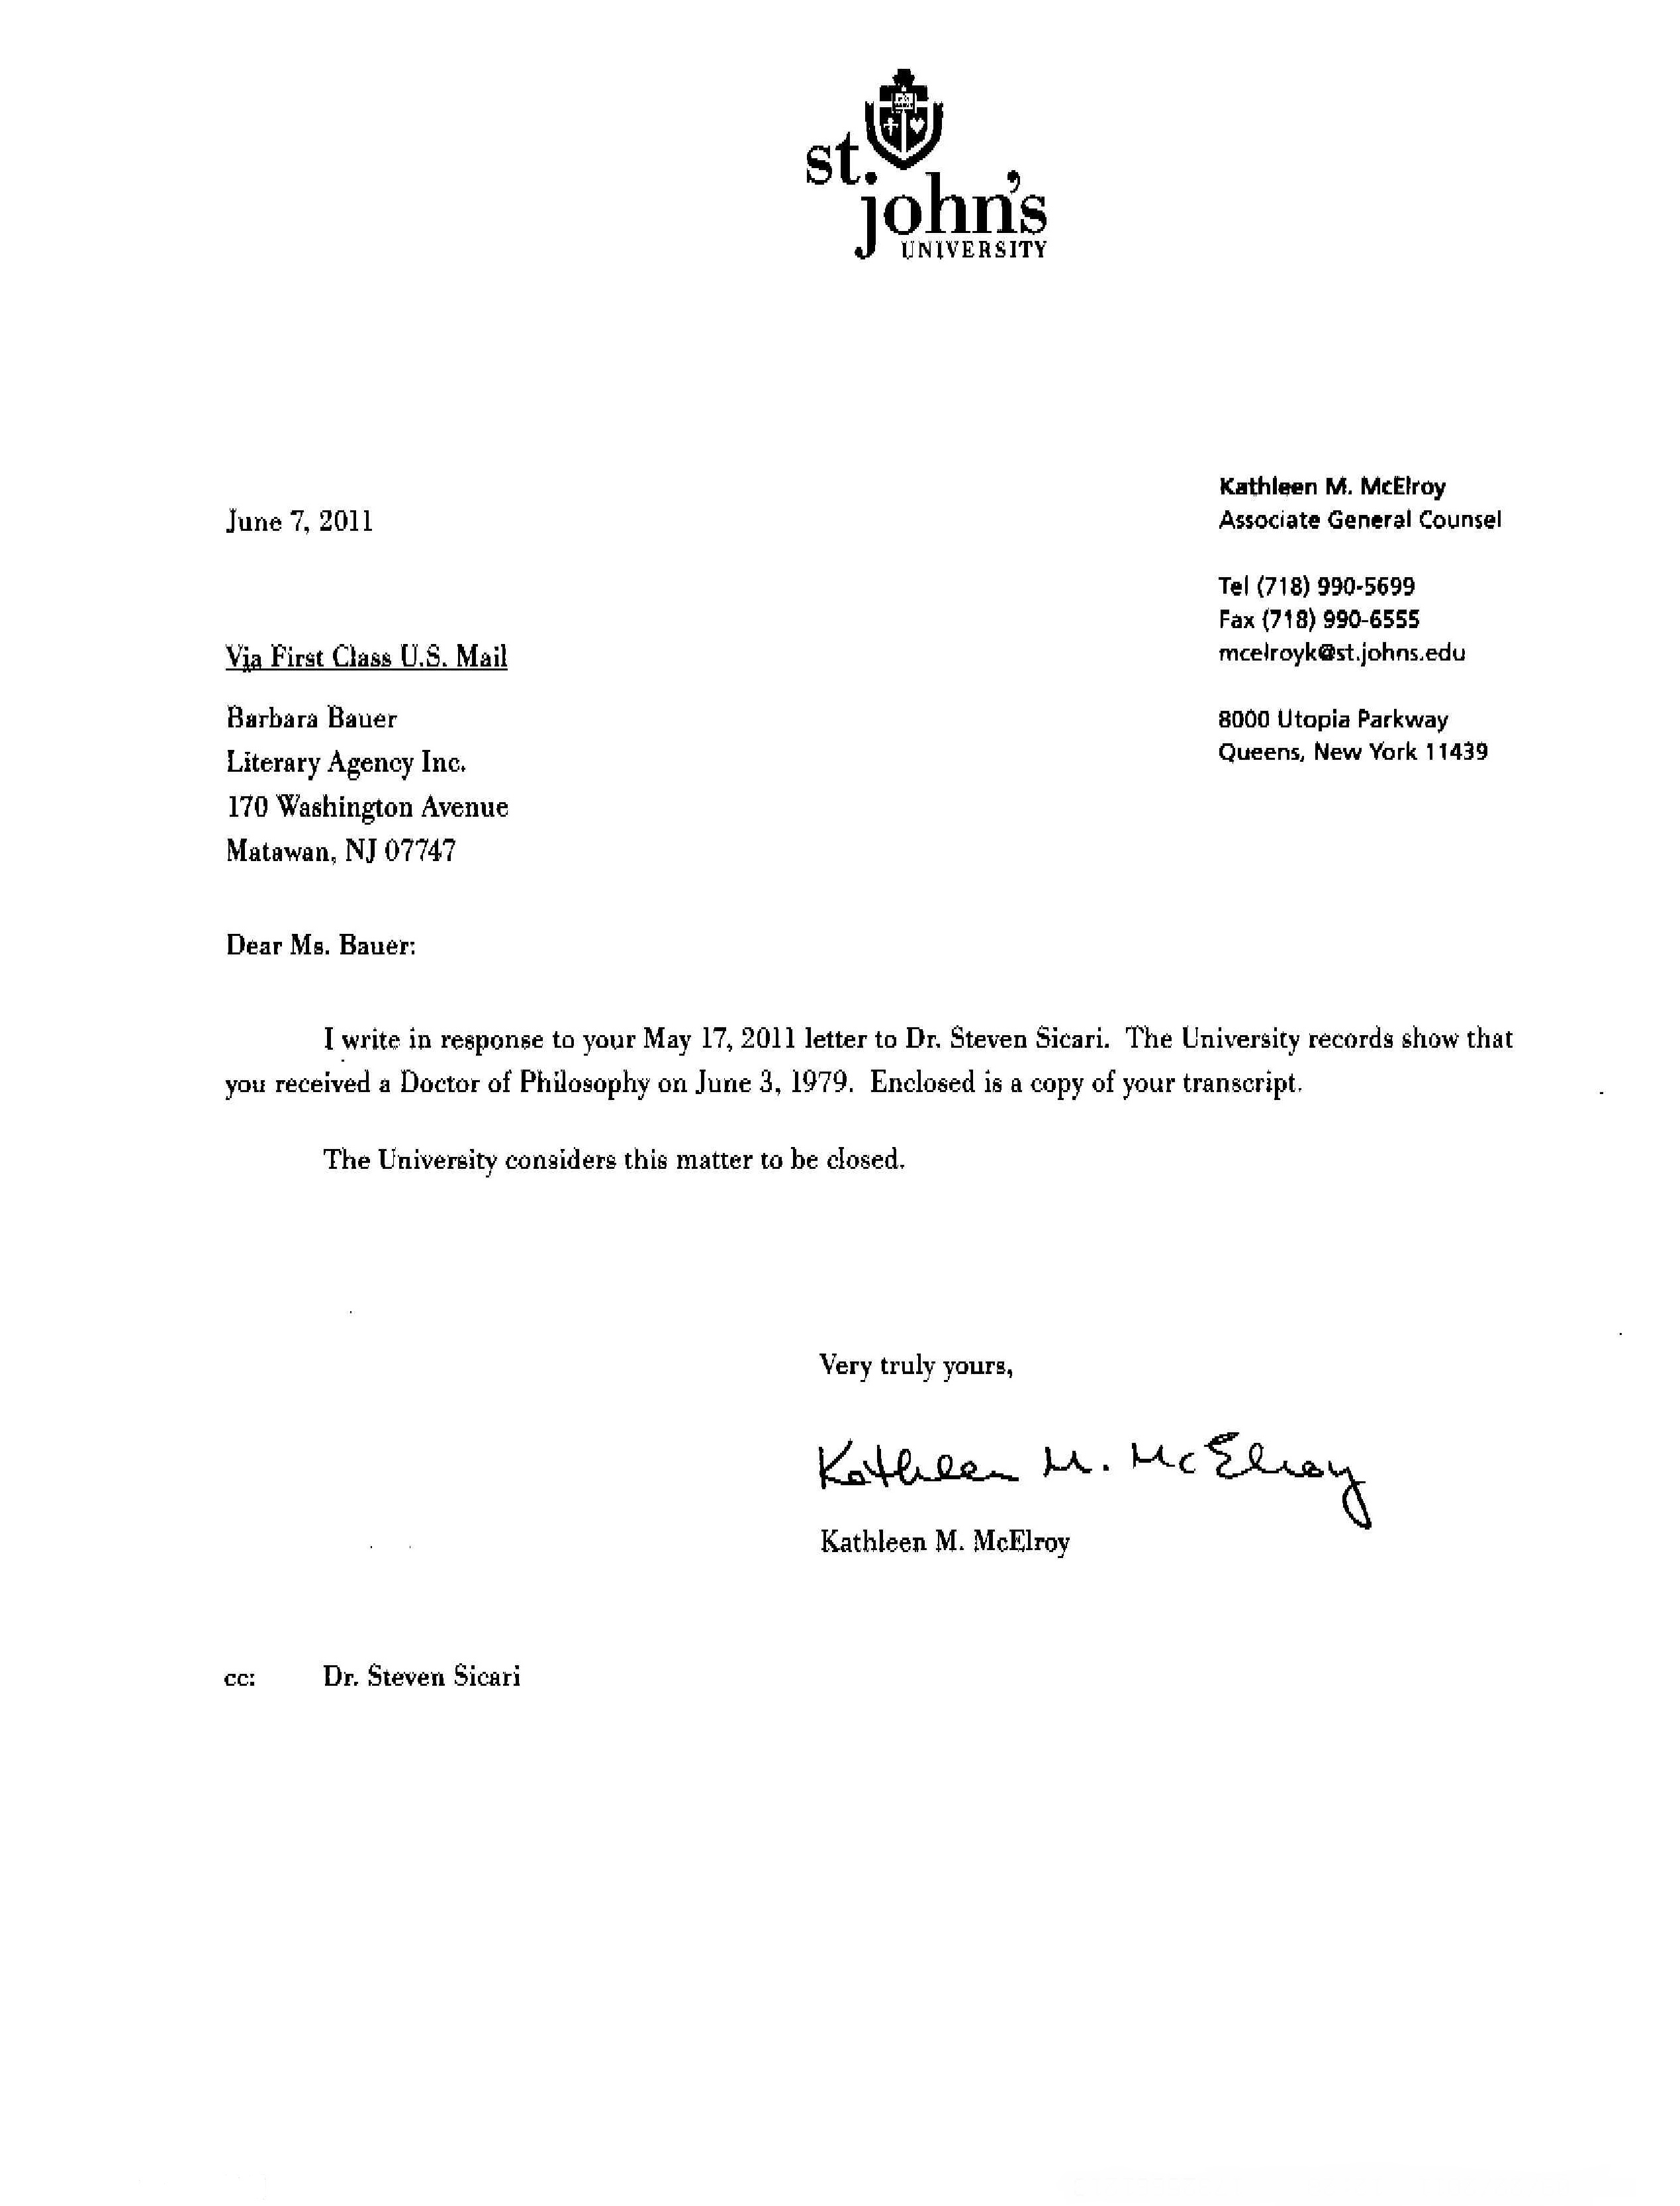 Bauer vs glatzer letter from st johns university regarding for expocarfo